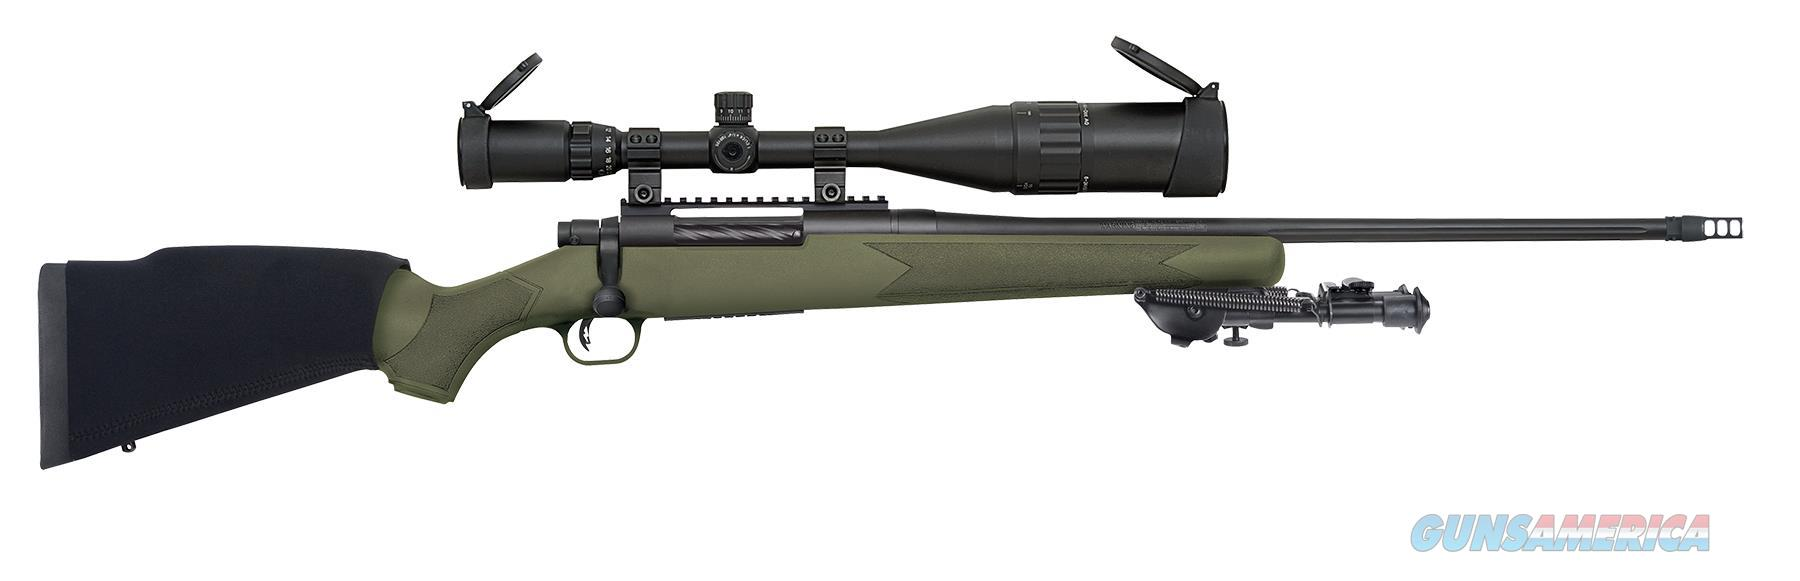 "Mossberg 27925 Patriot Night Train Bolt 300 Win Mag 22"" 4+1 Synthetic Od Green Stk Blued 27925  Guns > Rifles > MN Misc Rifles"